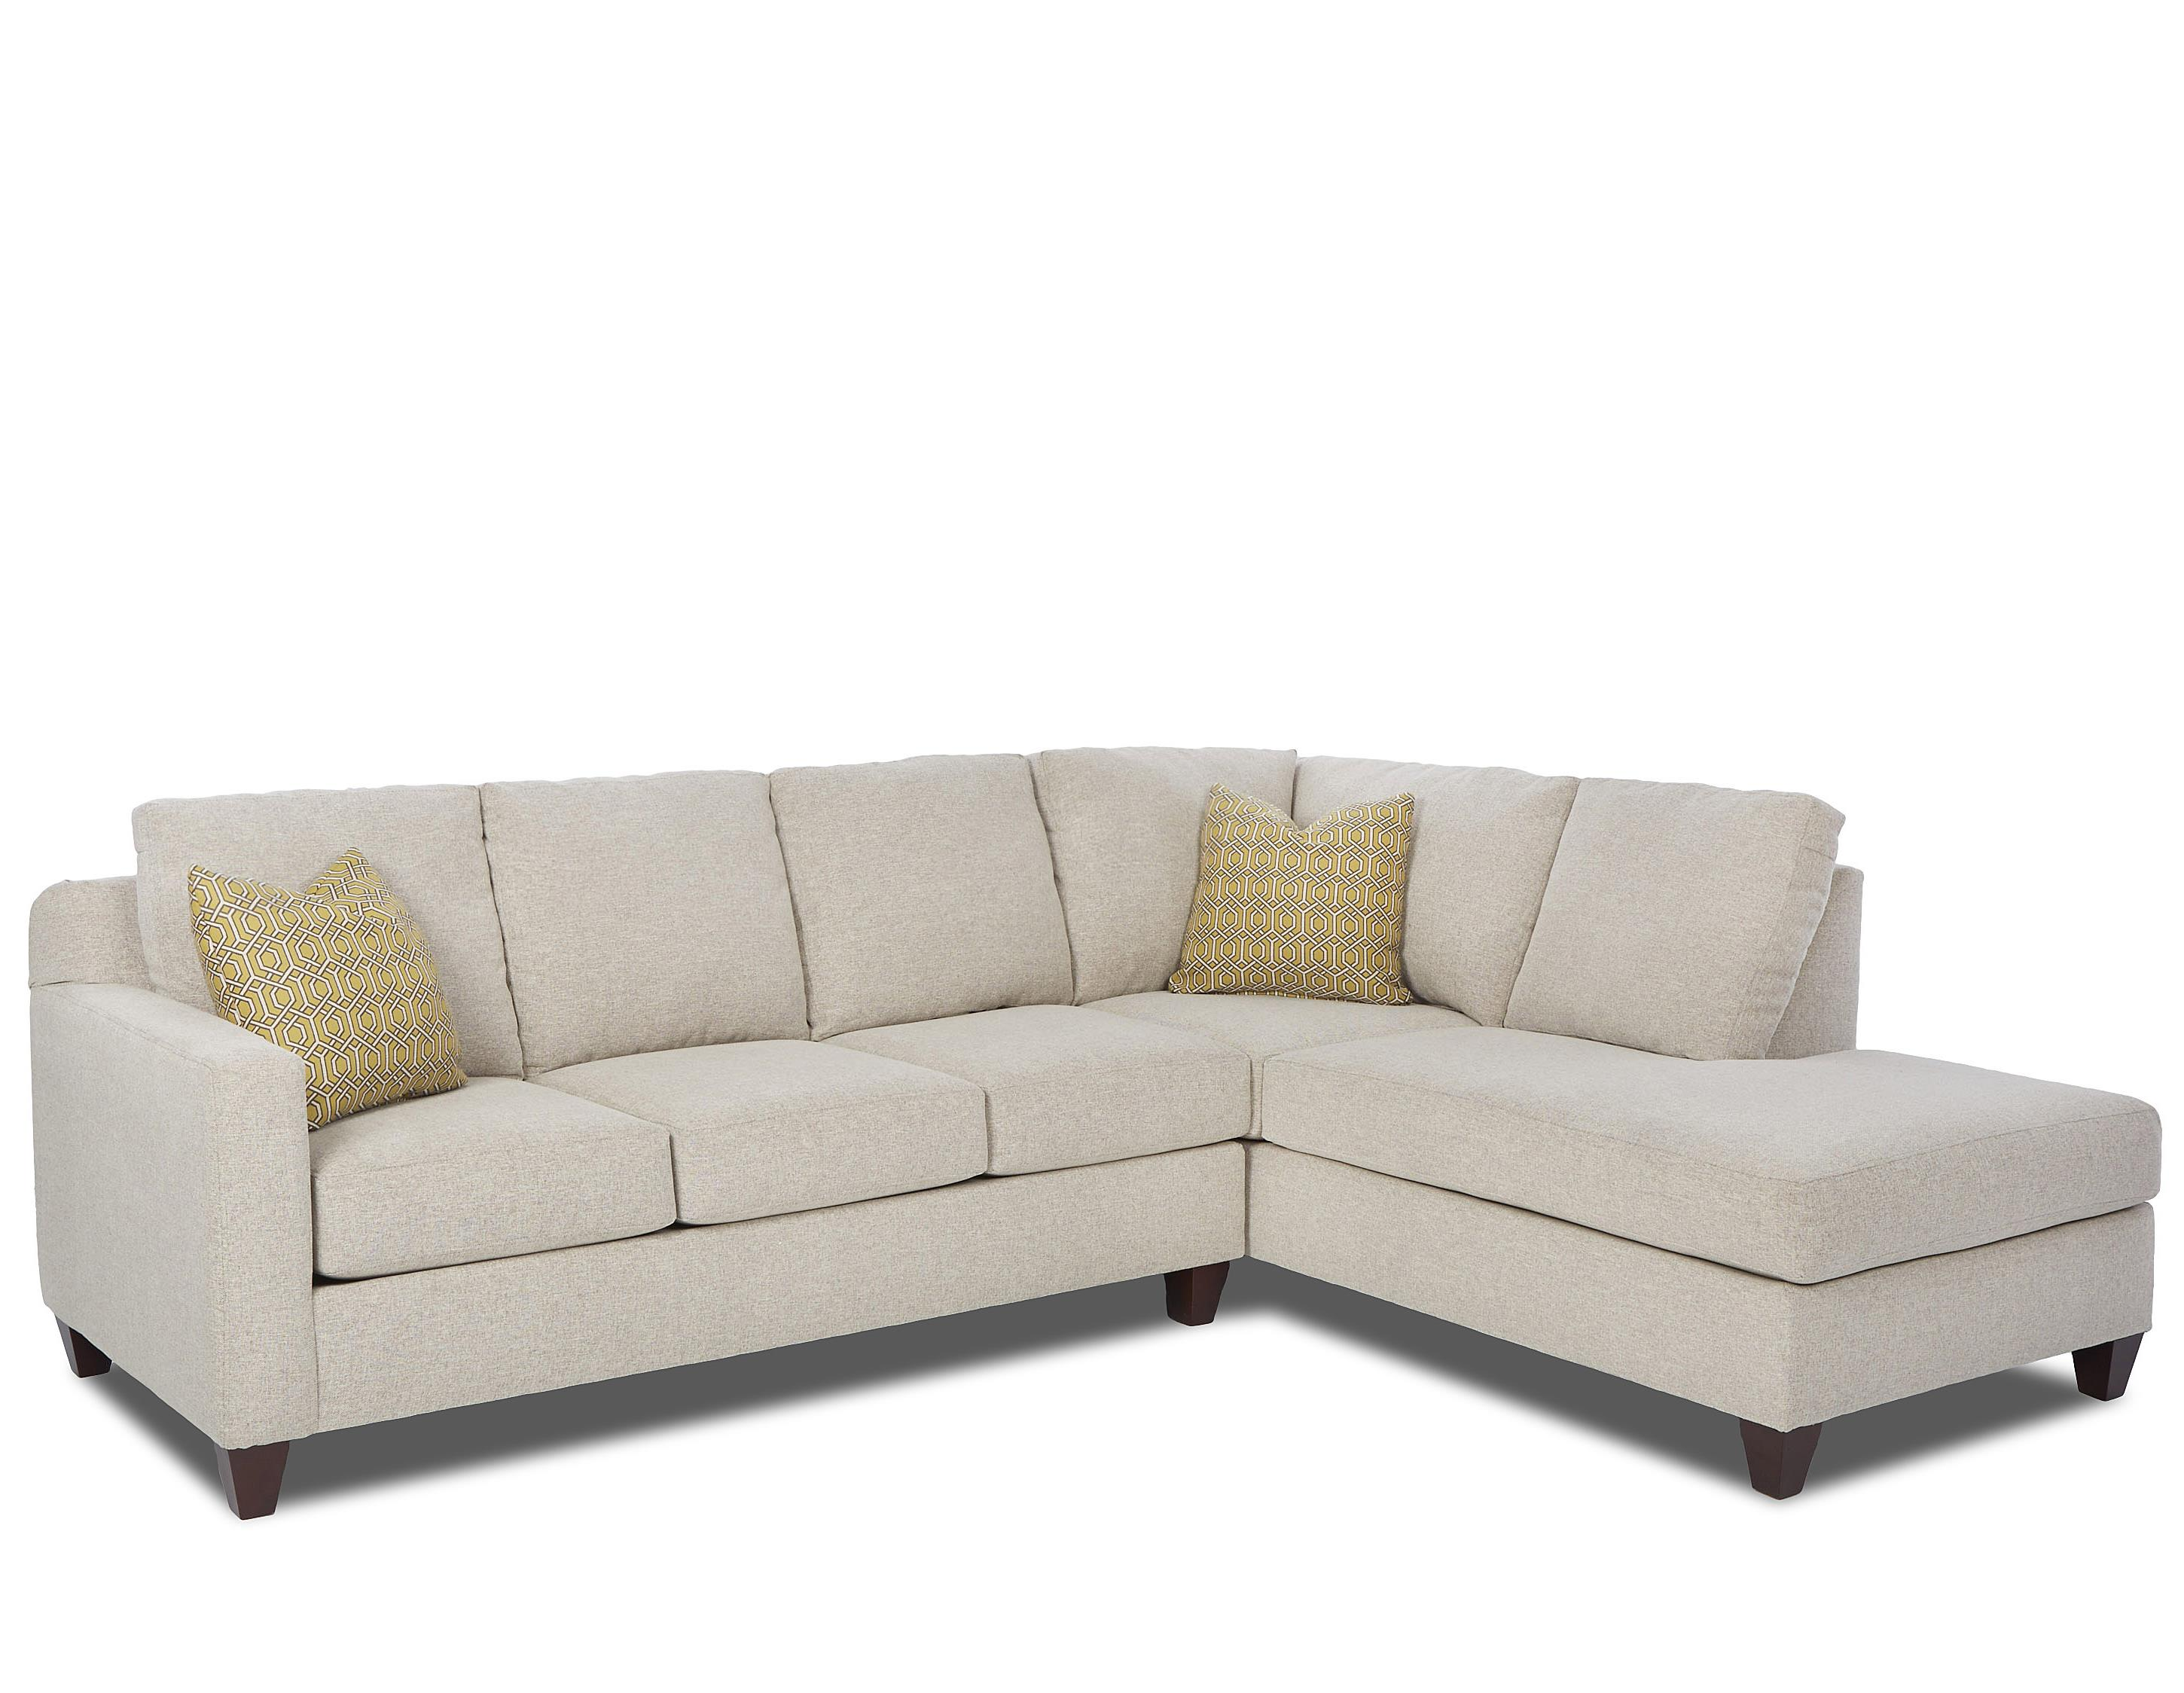 Contemporary 2 Piece Sectional with Right Arm Facing Sofa Chaise